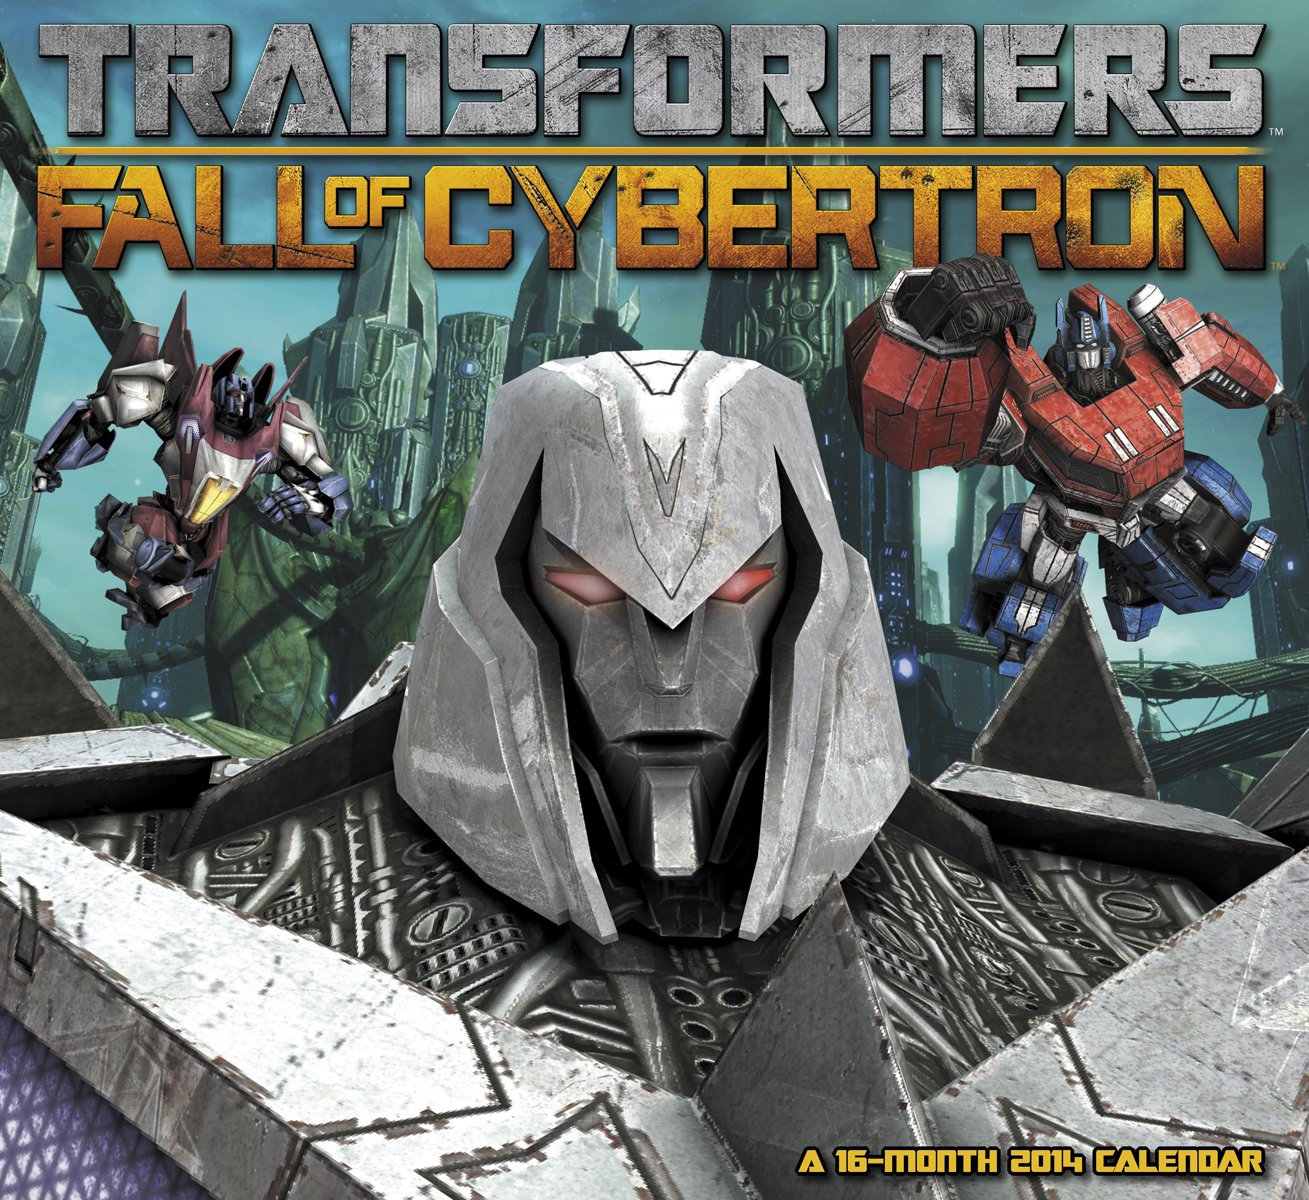 Fall-of-Cybertron-2014-01